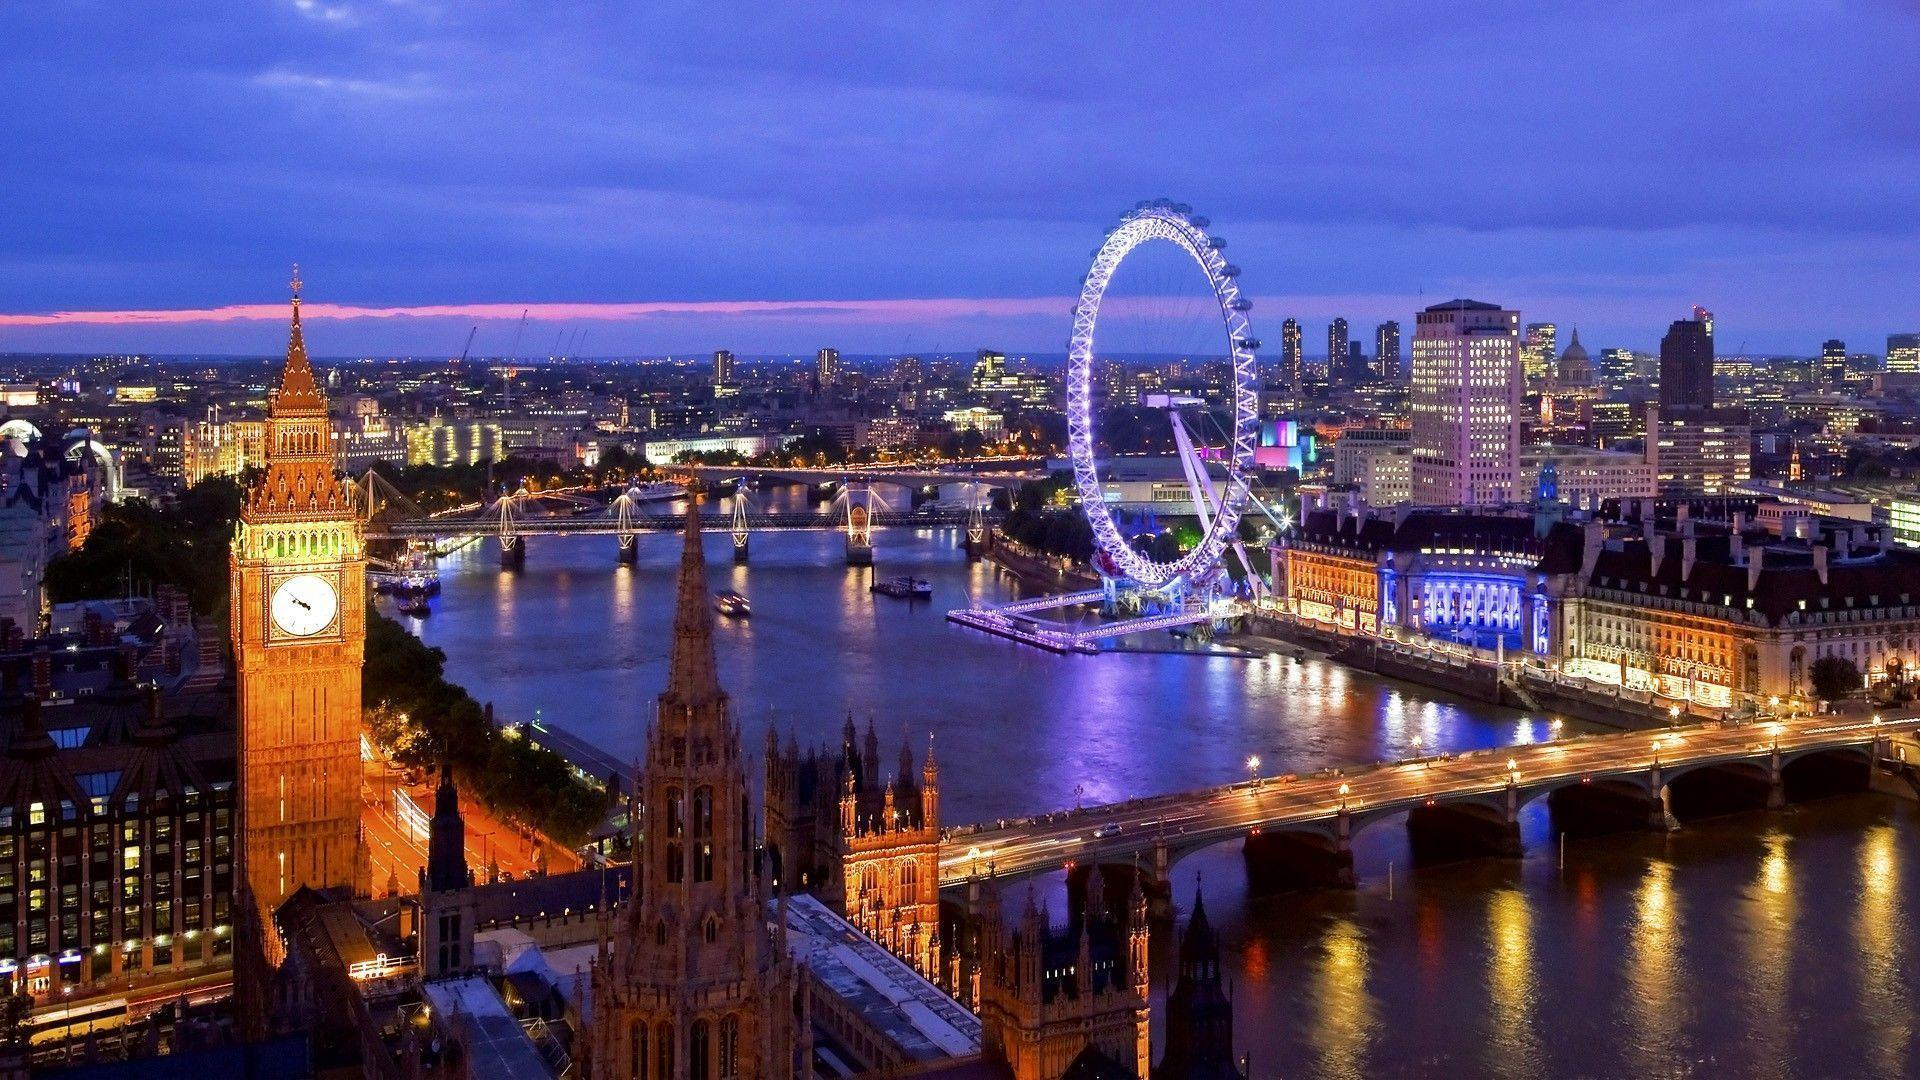 London Desktop Wallpapers   Top London Desktop Backgrounds 1920x1080